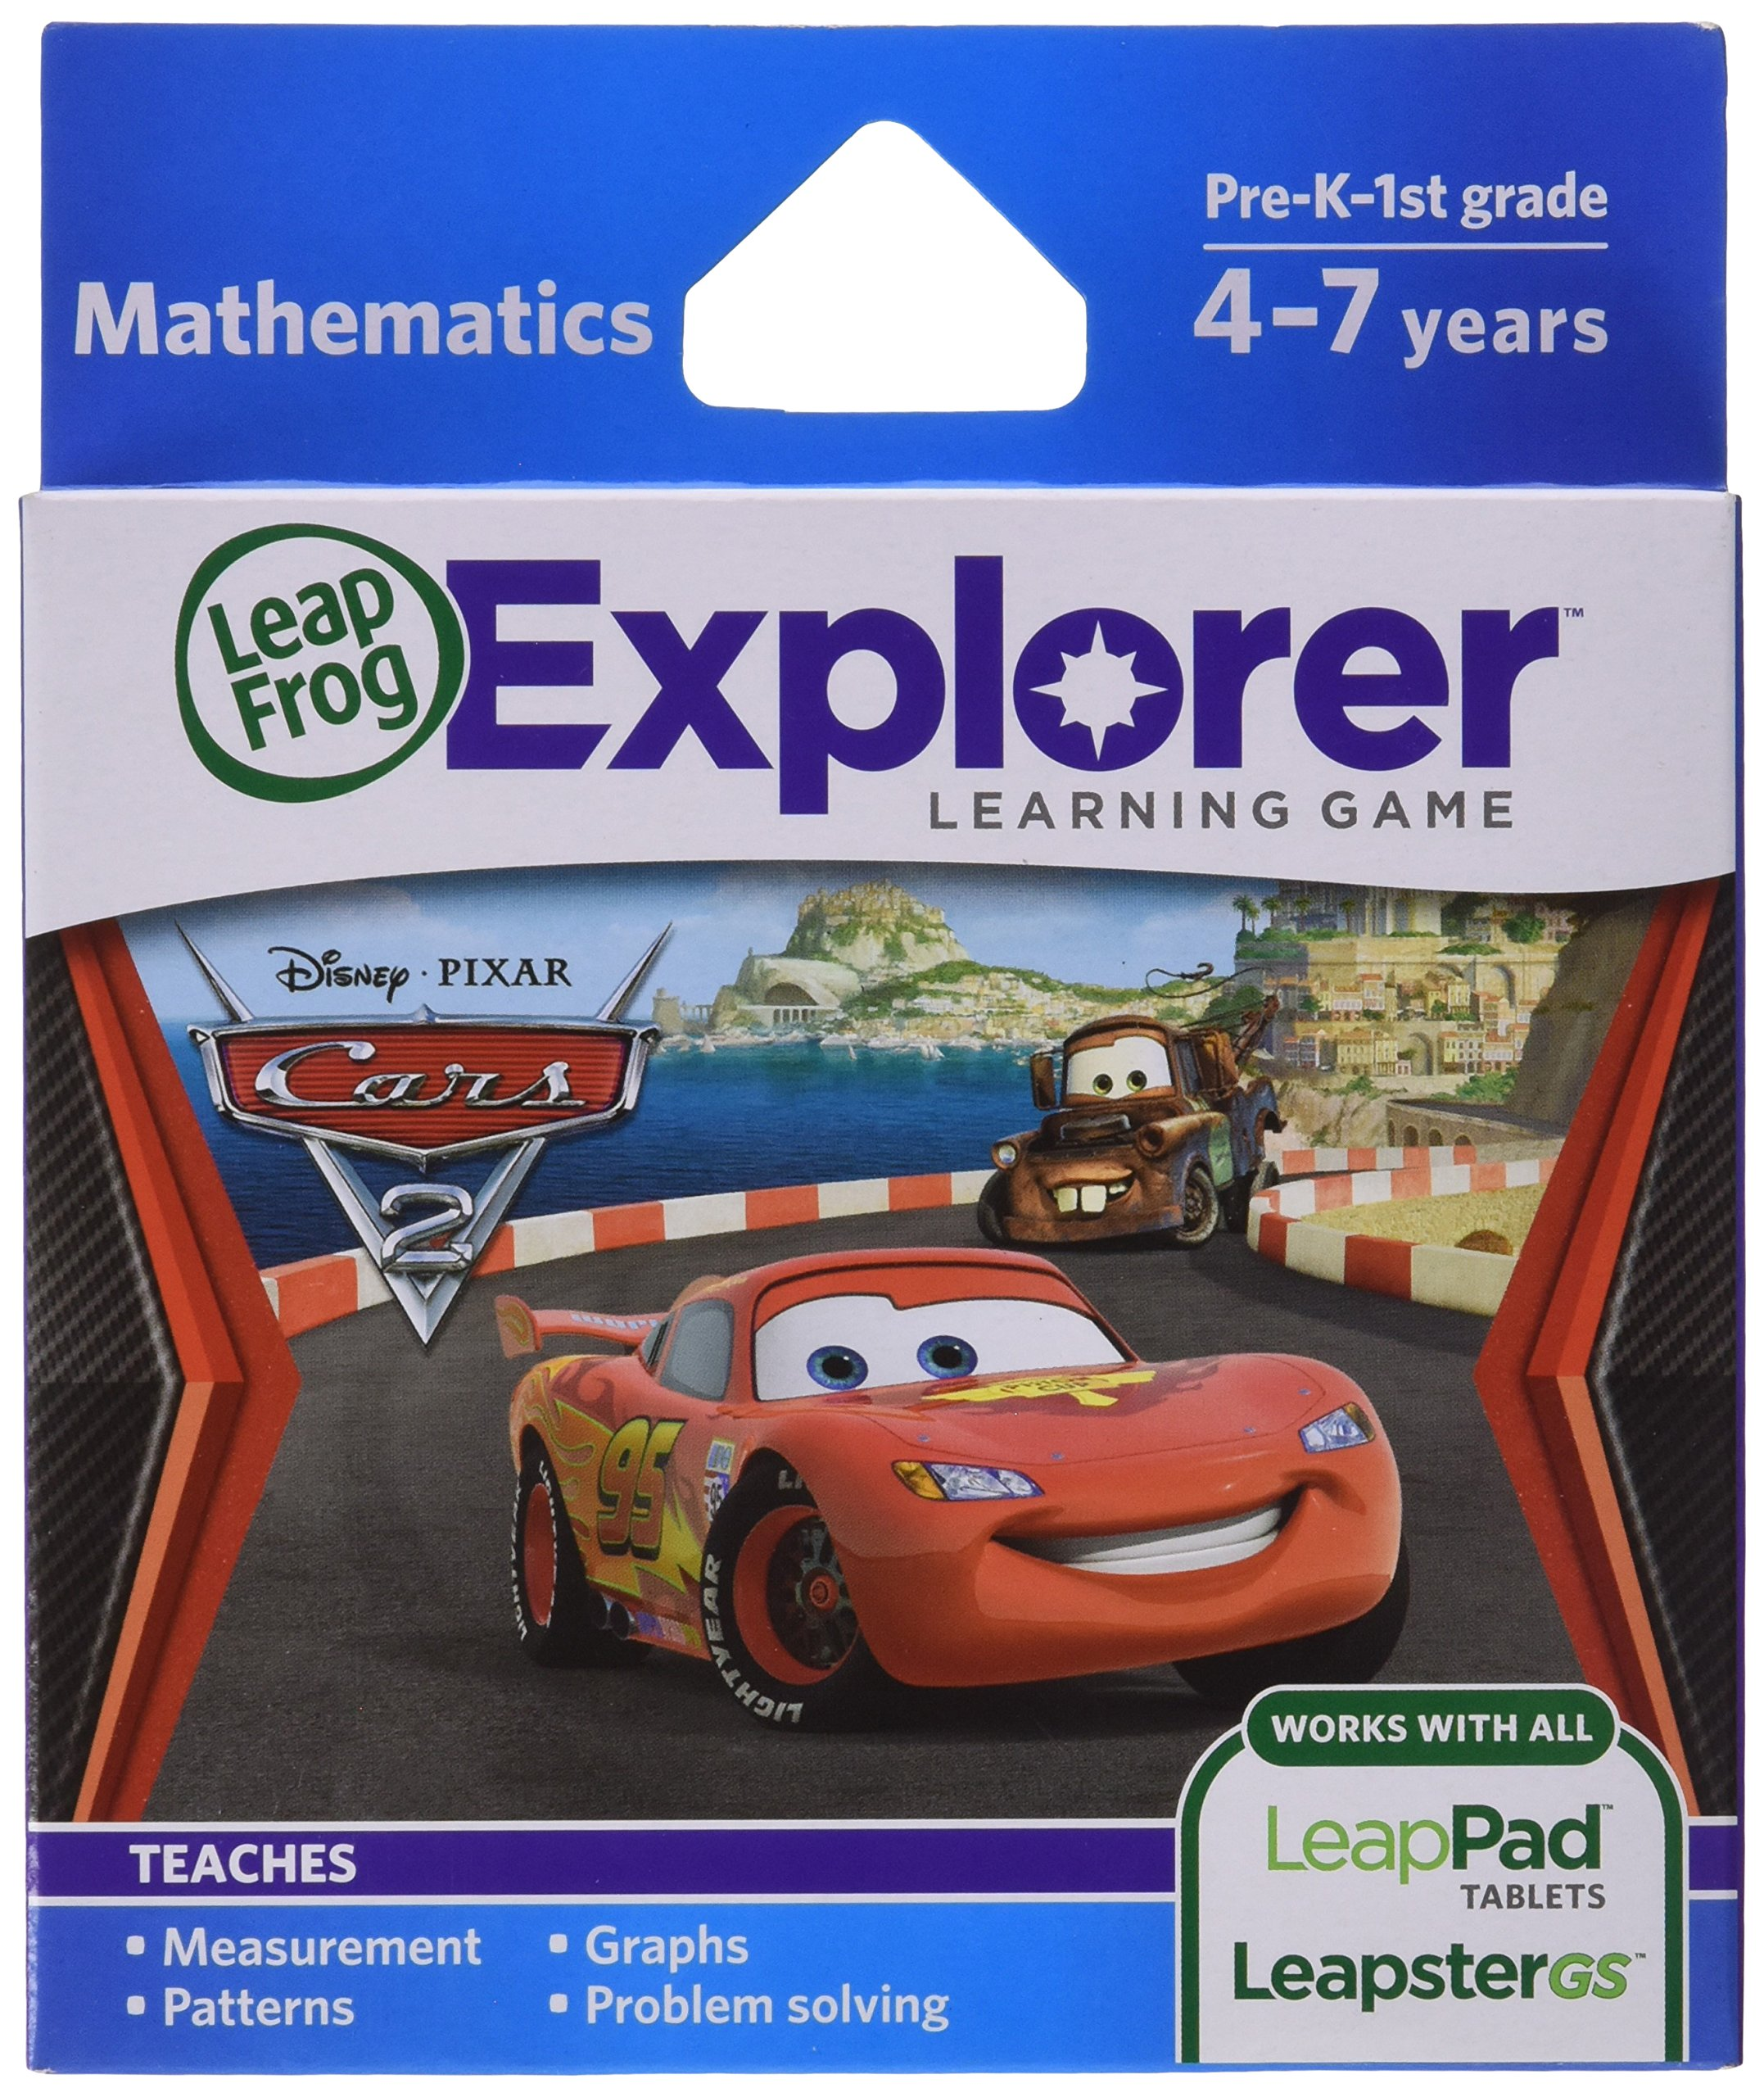 LeapFrog Learning Game Disney-Pixar Cars 2 (works with LeapPad Tablets, Leapster GS and Leapster Explorer) by LeapFrog (Image #1)